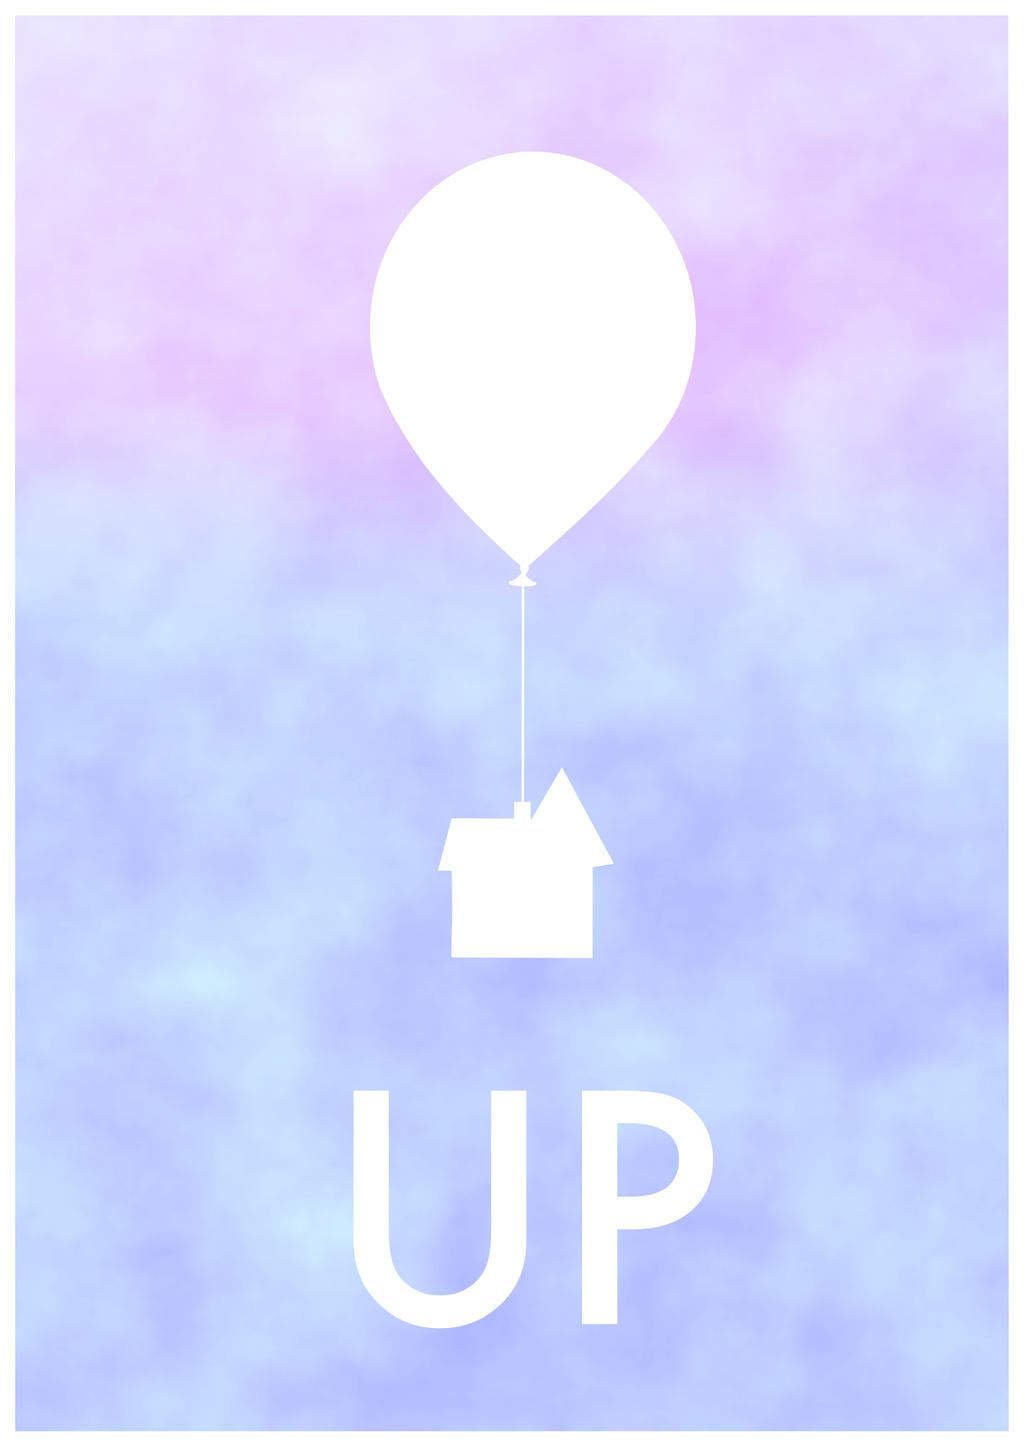 Up minimal poster by cw posters on deviantart for Minimal art reddit